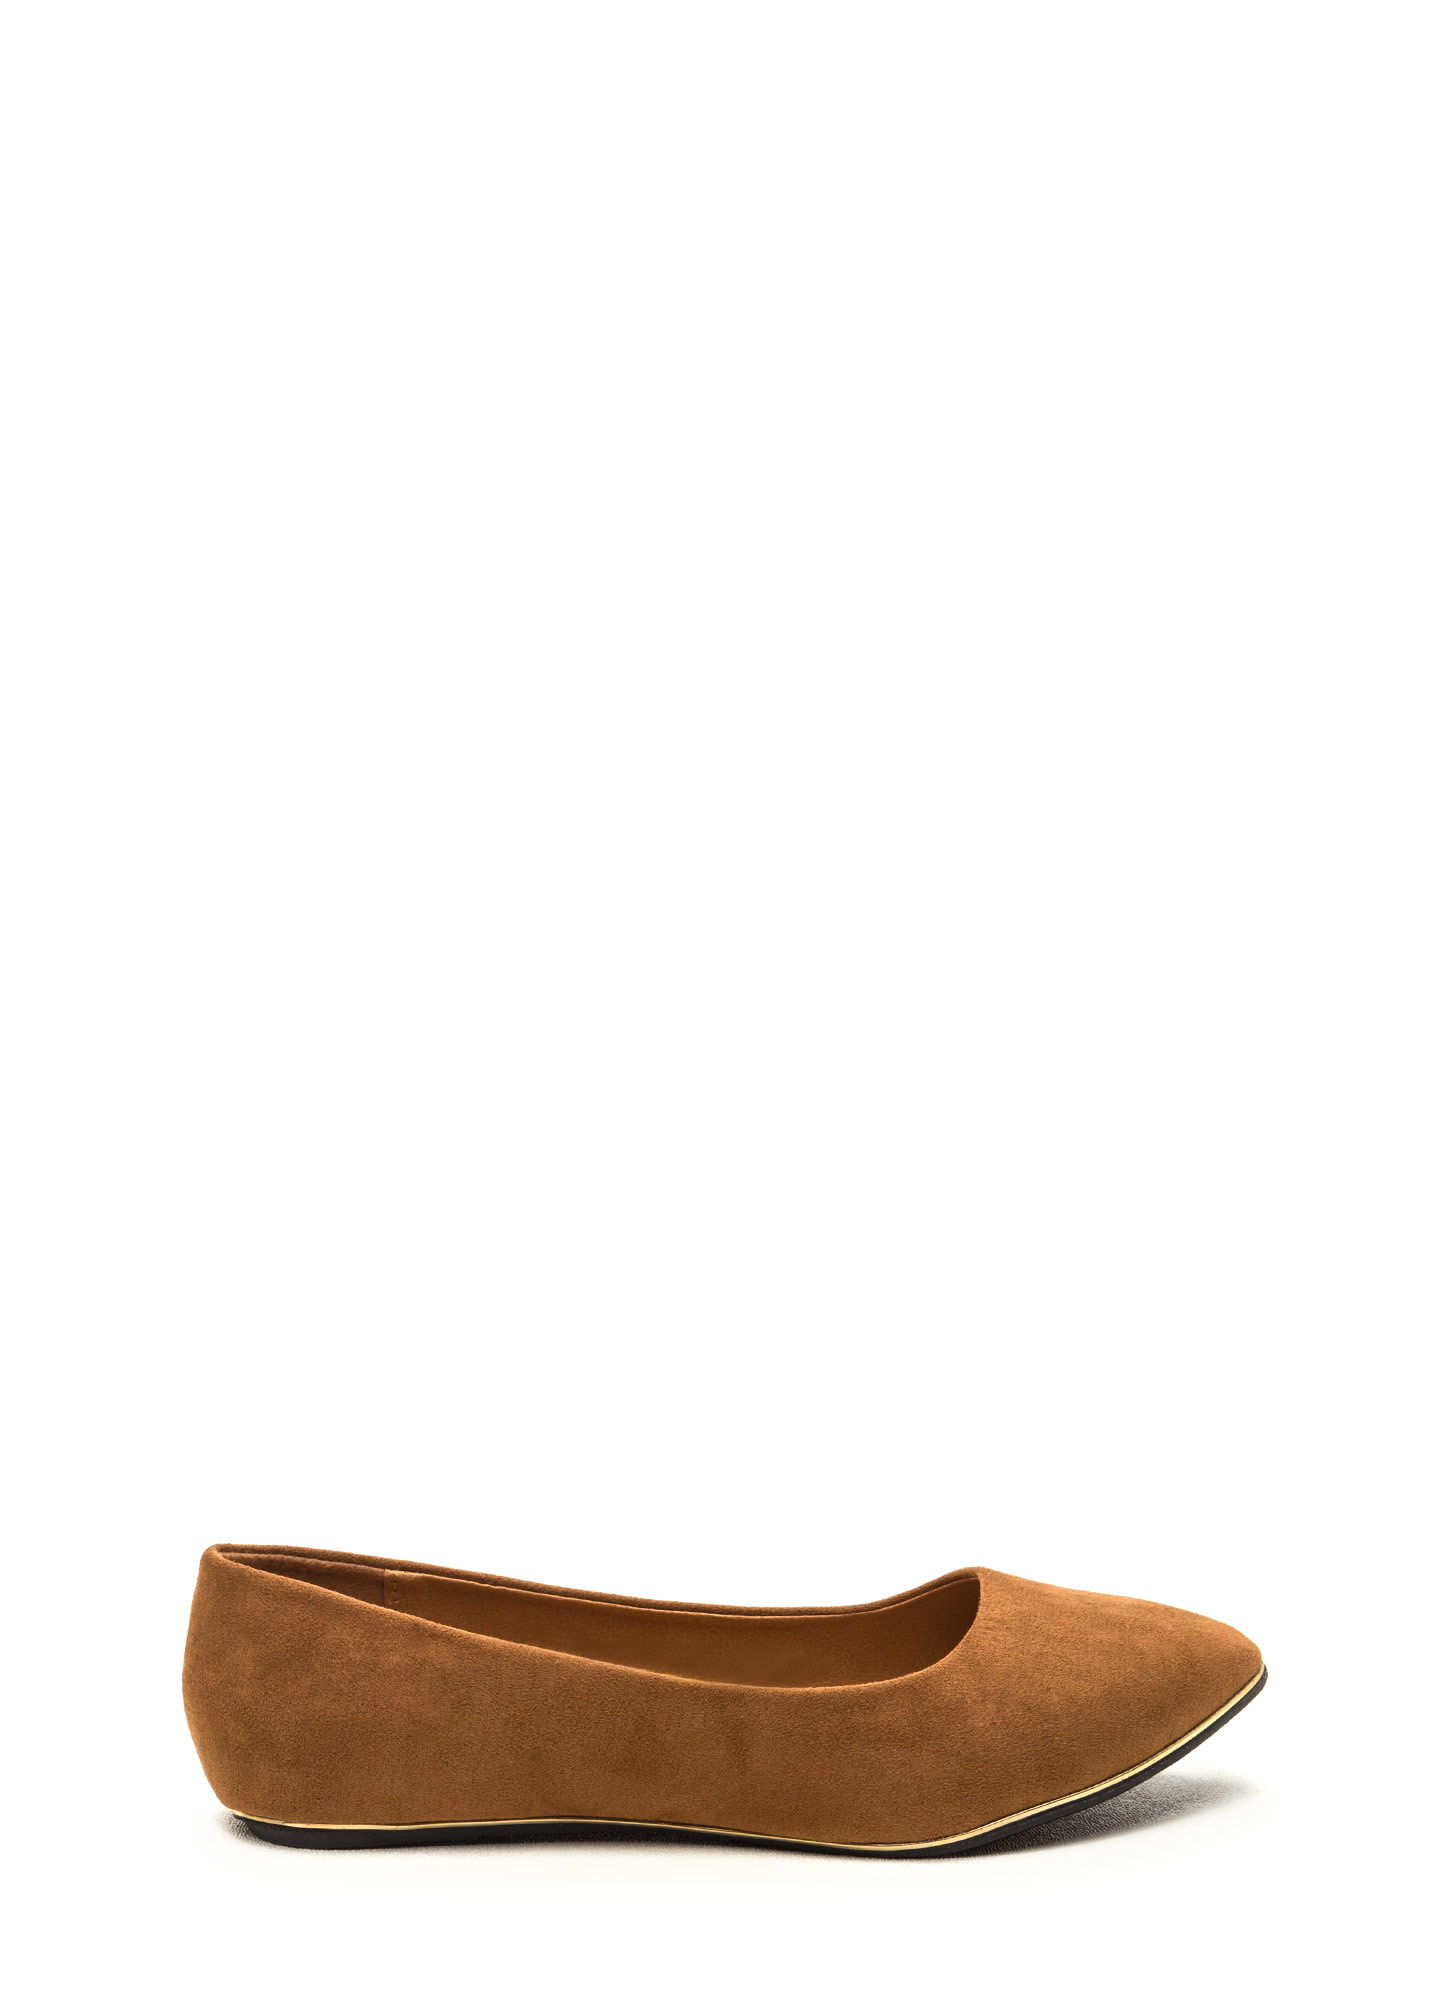 Full Gleam Ahead Pointy Faux Suede Flats TAN